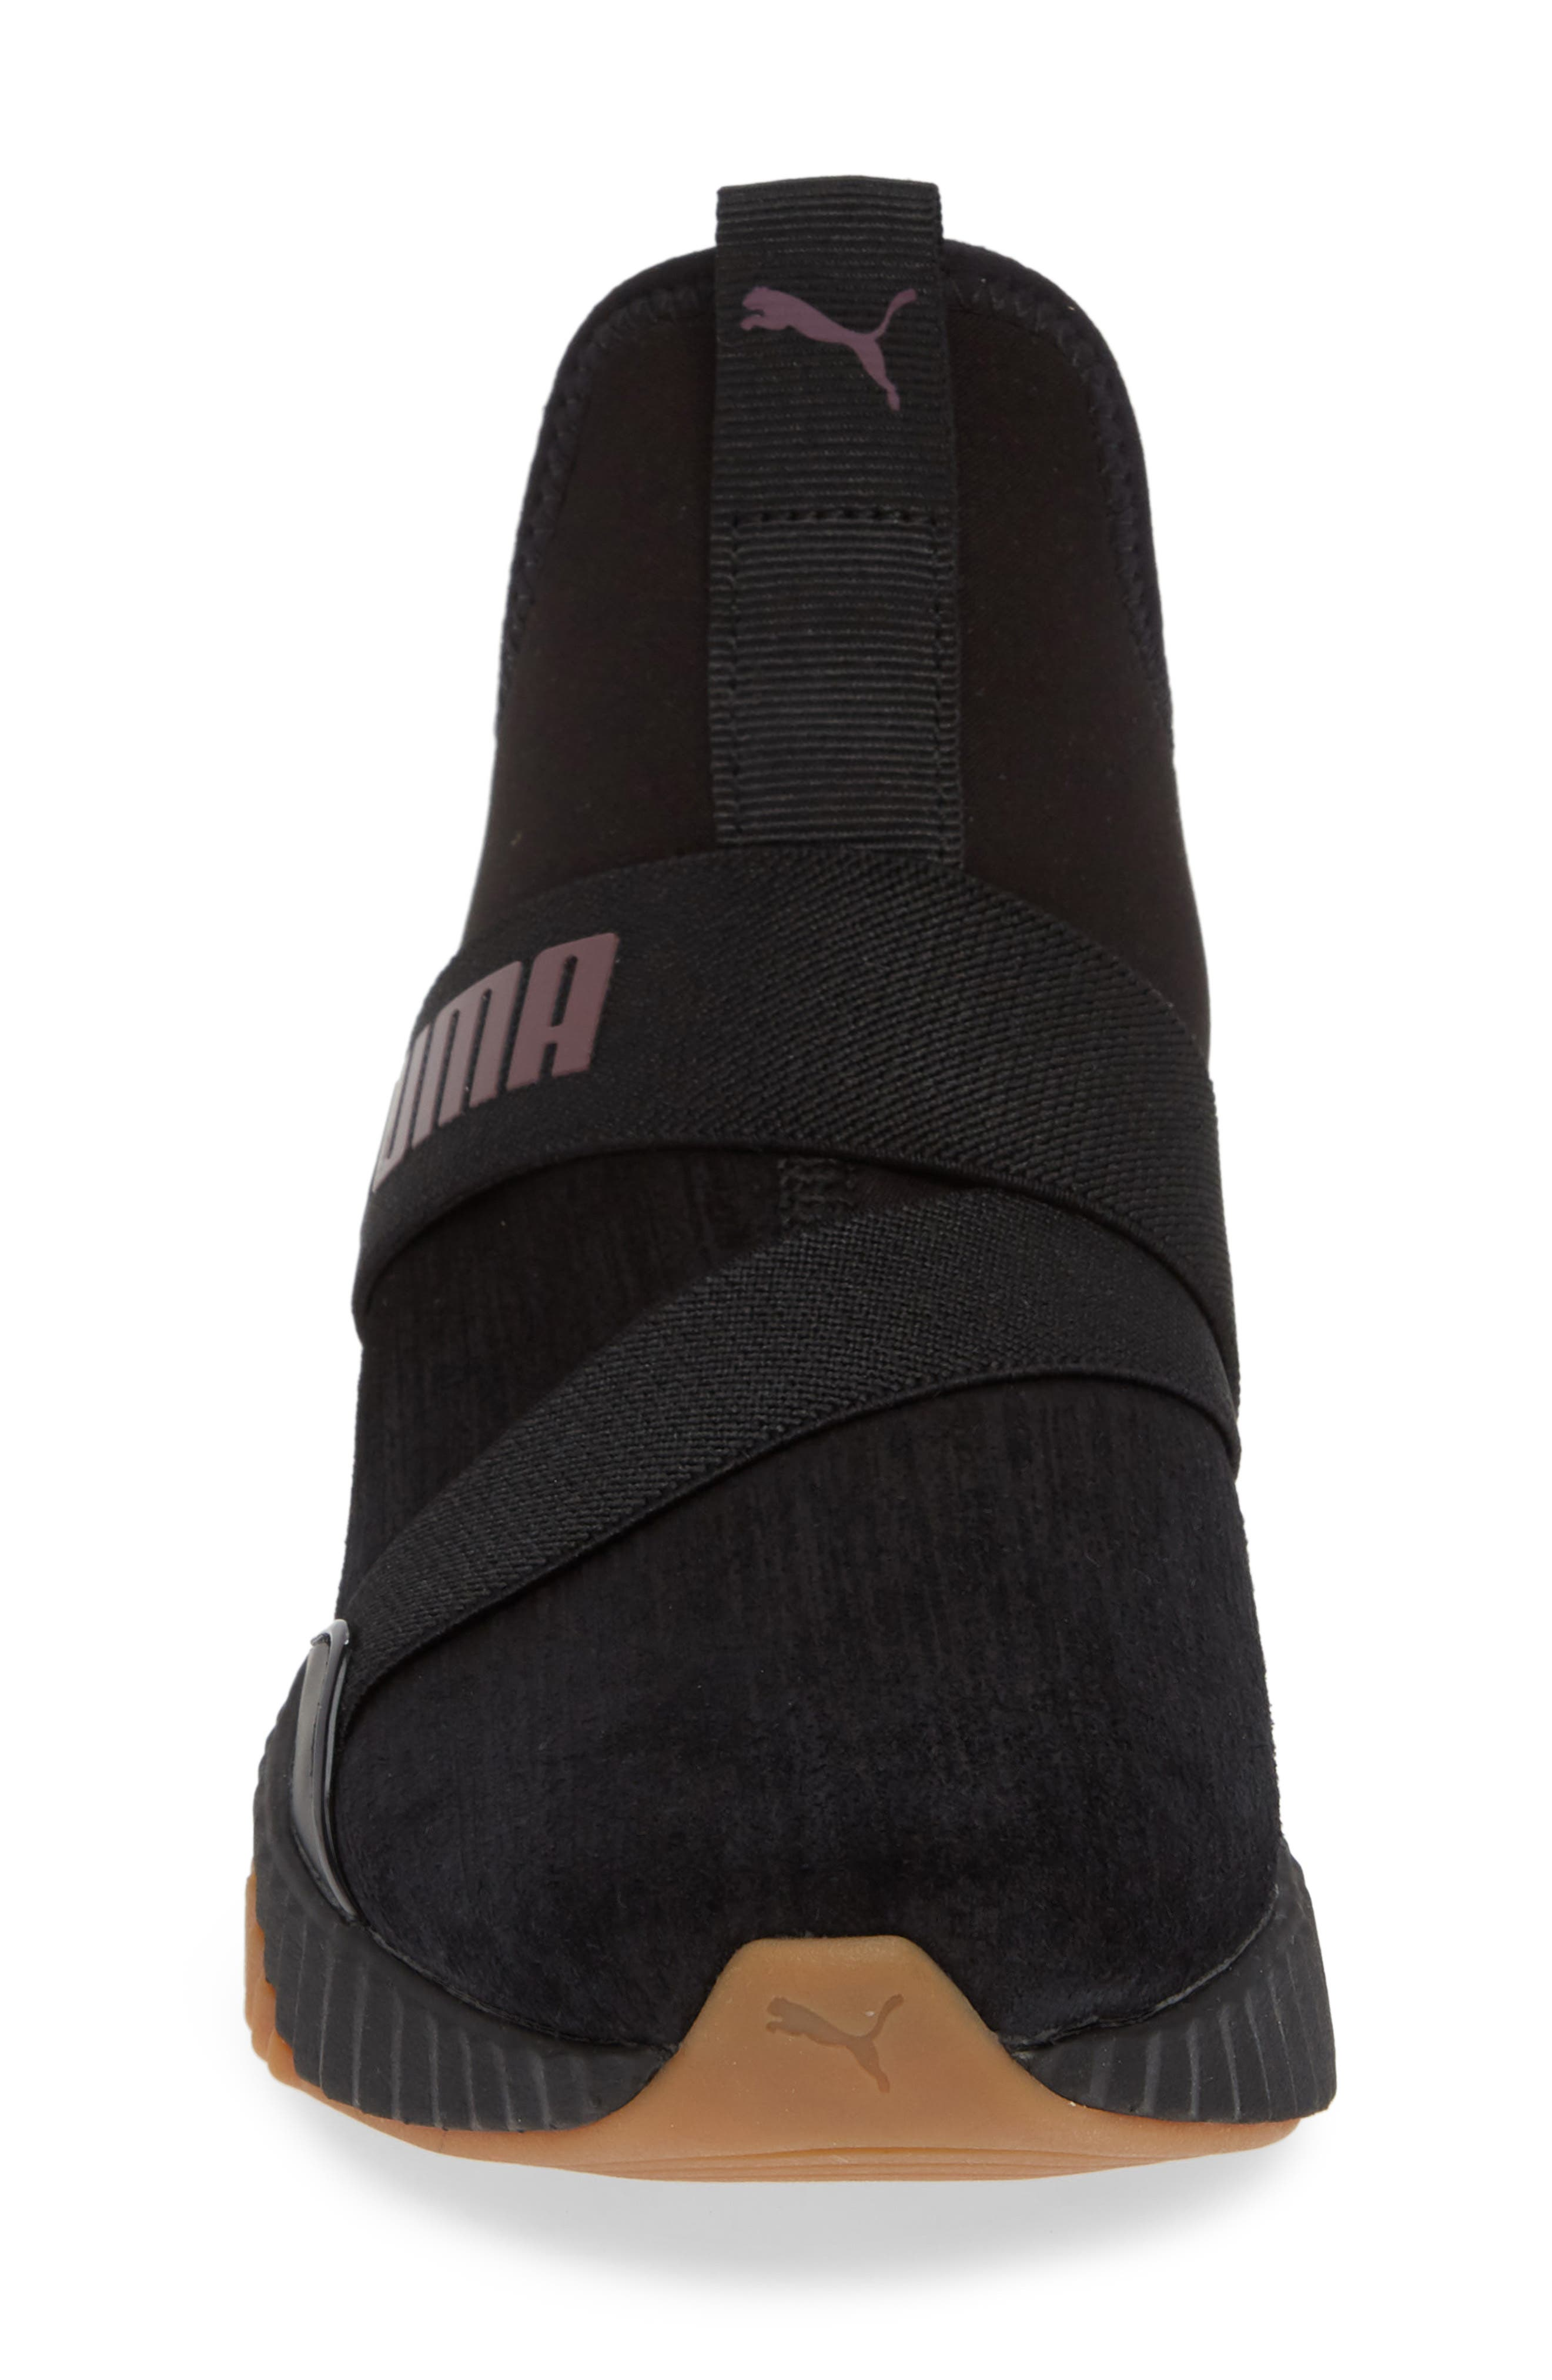 Defy Mid Luxe Sneaker,                             Alternate thumbnail 4, color,                             PUMA BLACK/ FIG